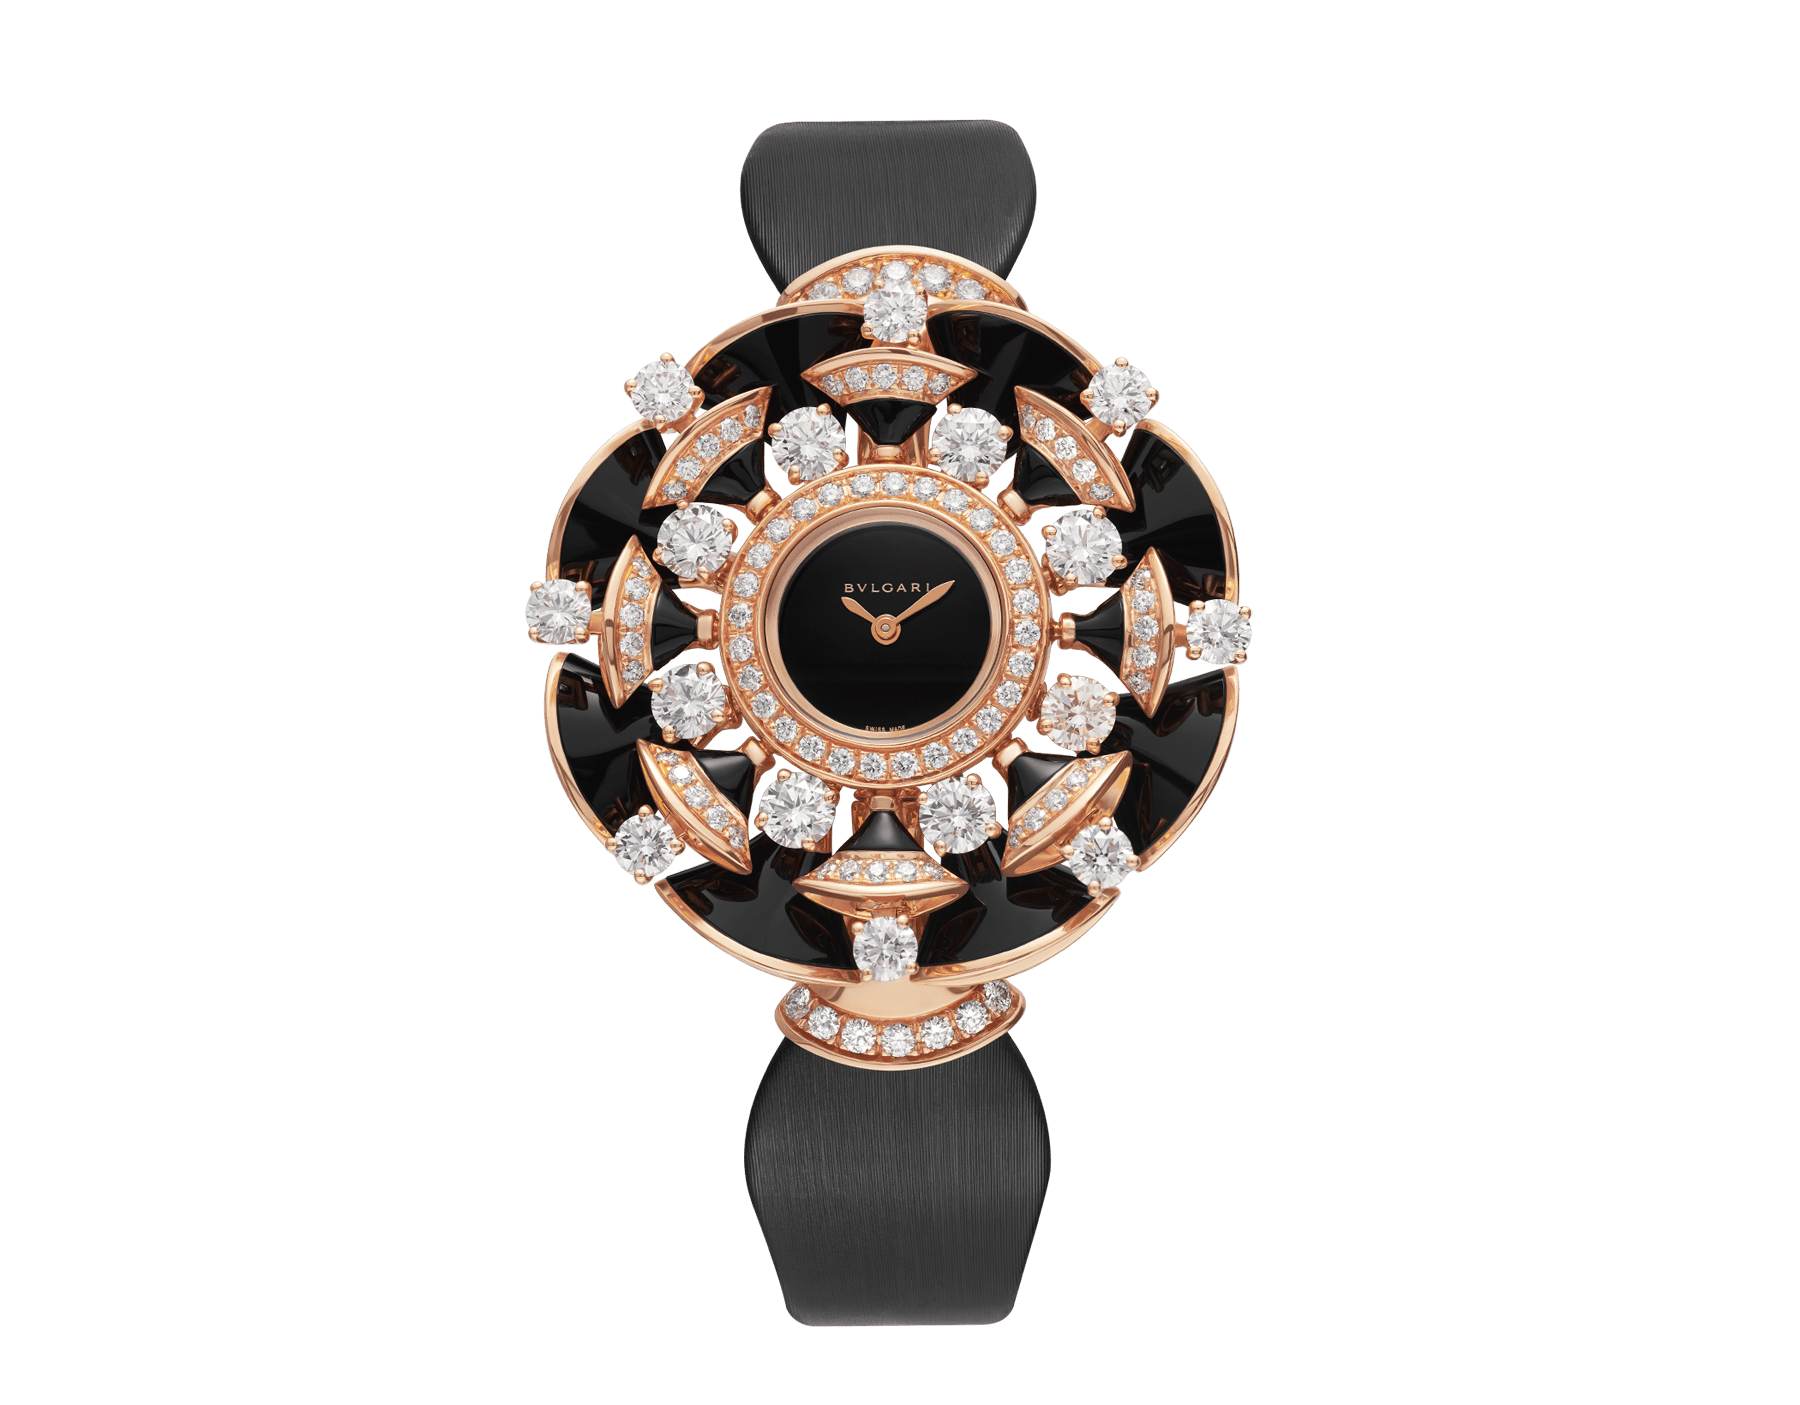 DIVAS' DREAM watch with 18 kt rose gold case set with brilliant-cut diamonds, round-cut diamonds, and onyx elements, black lacquered dial and black satin bracelet 102216 image 1